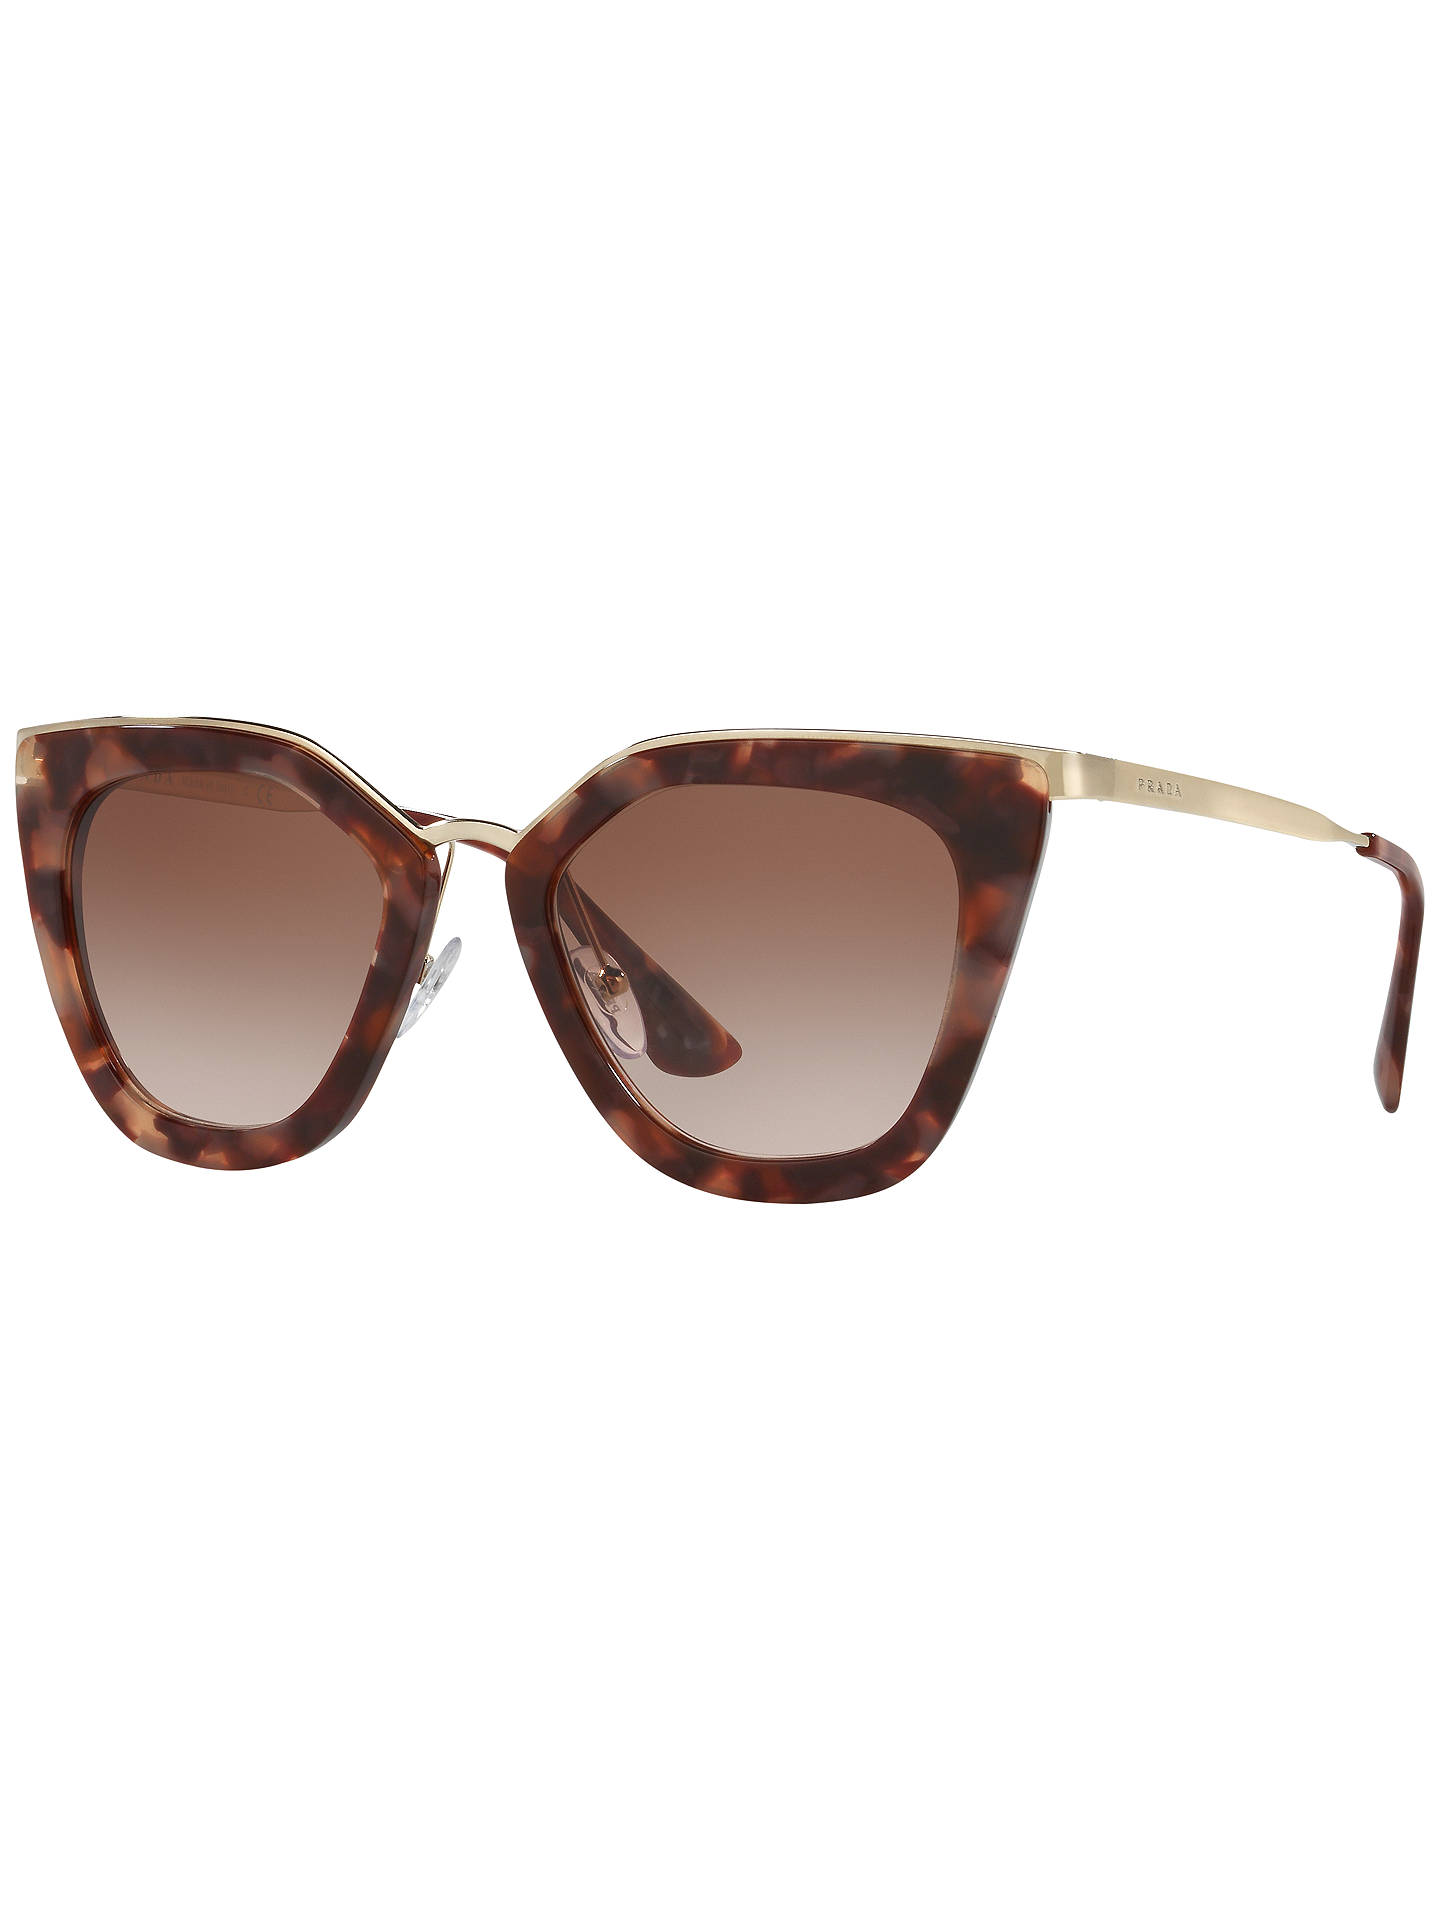 2564992110 BuyPrada SPR53S Cat s Eye Sunglasses